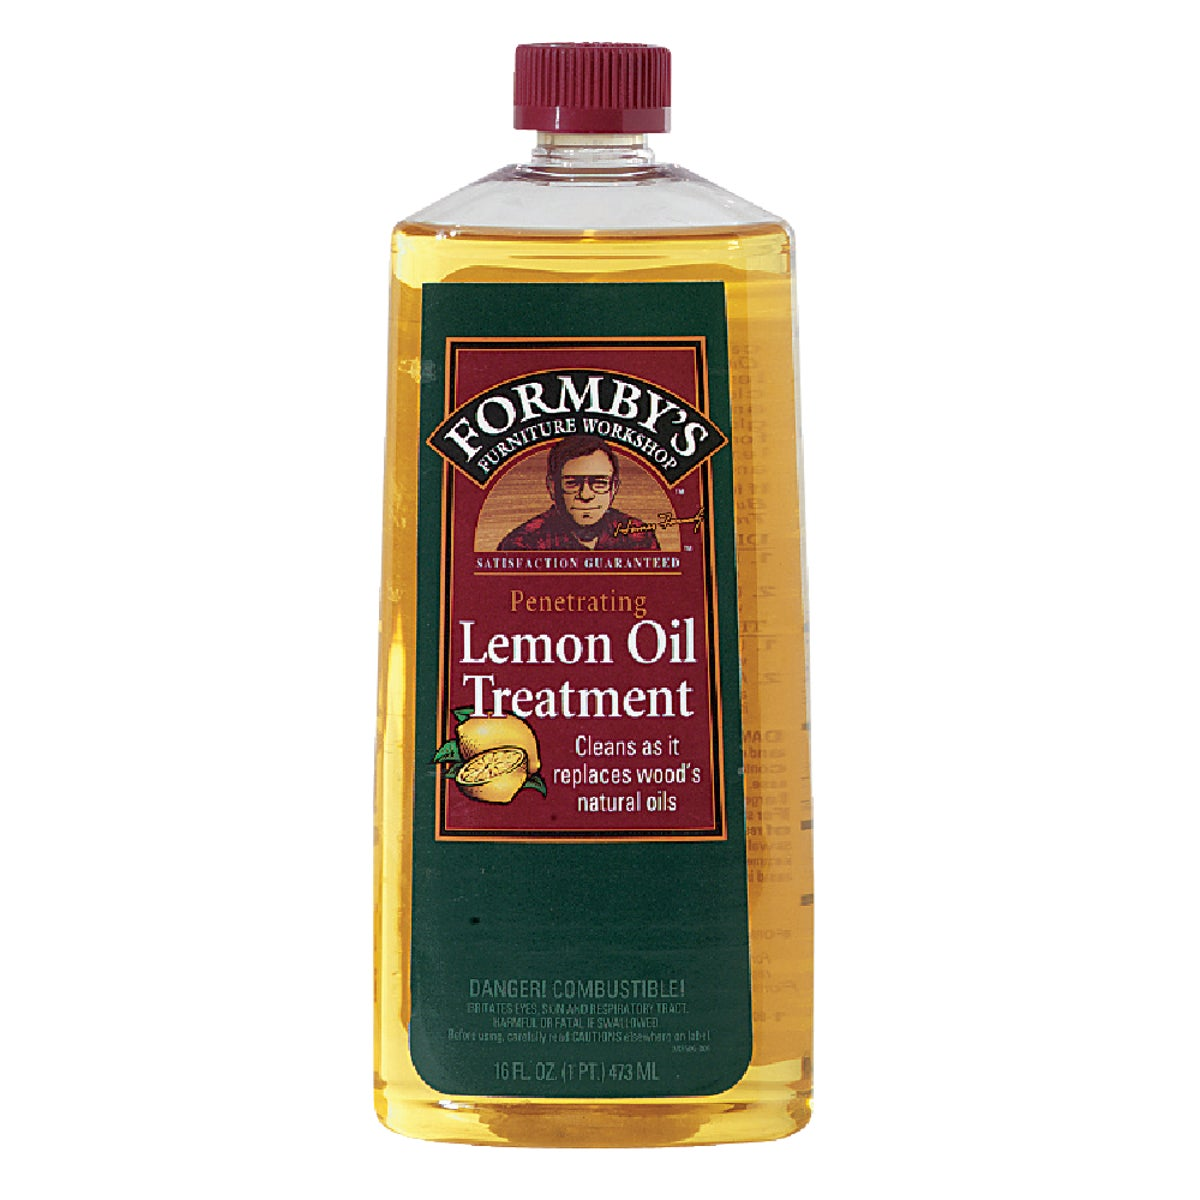 Formby's Lemon Oil Treatment, 30115